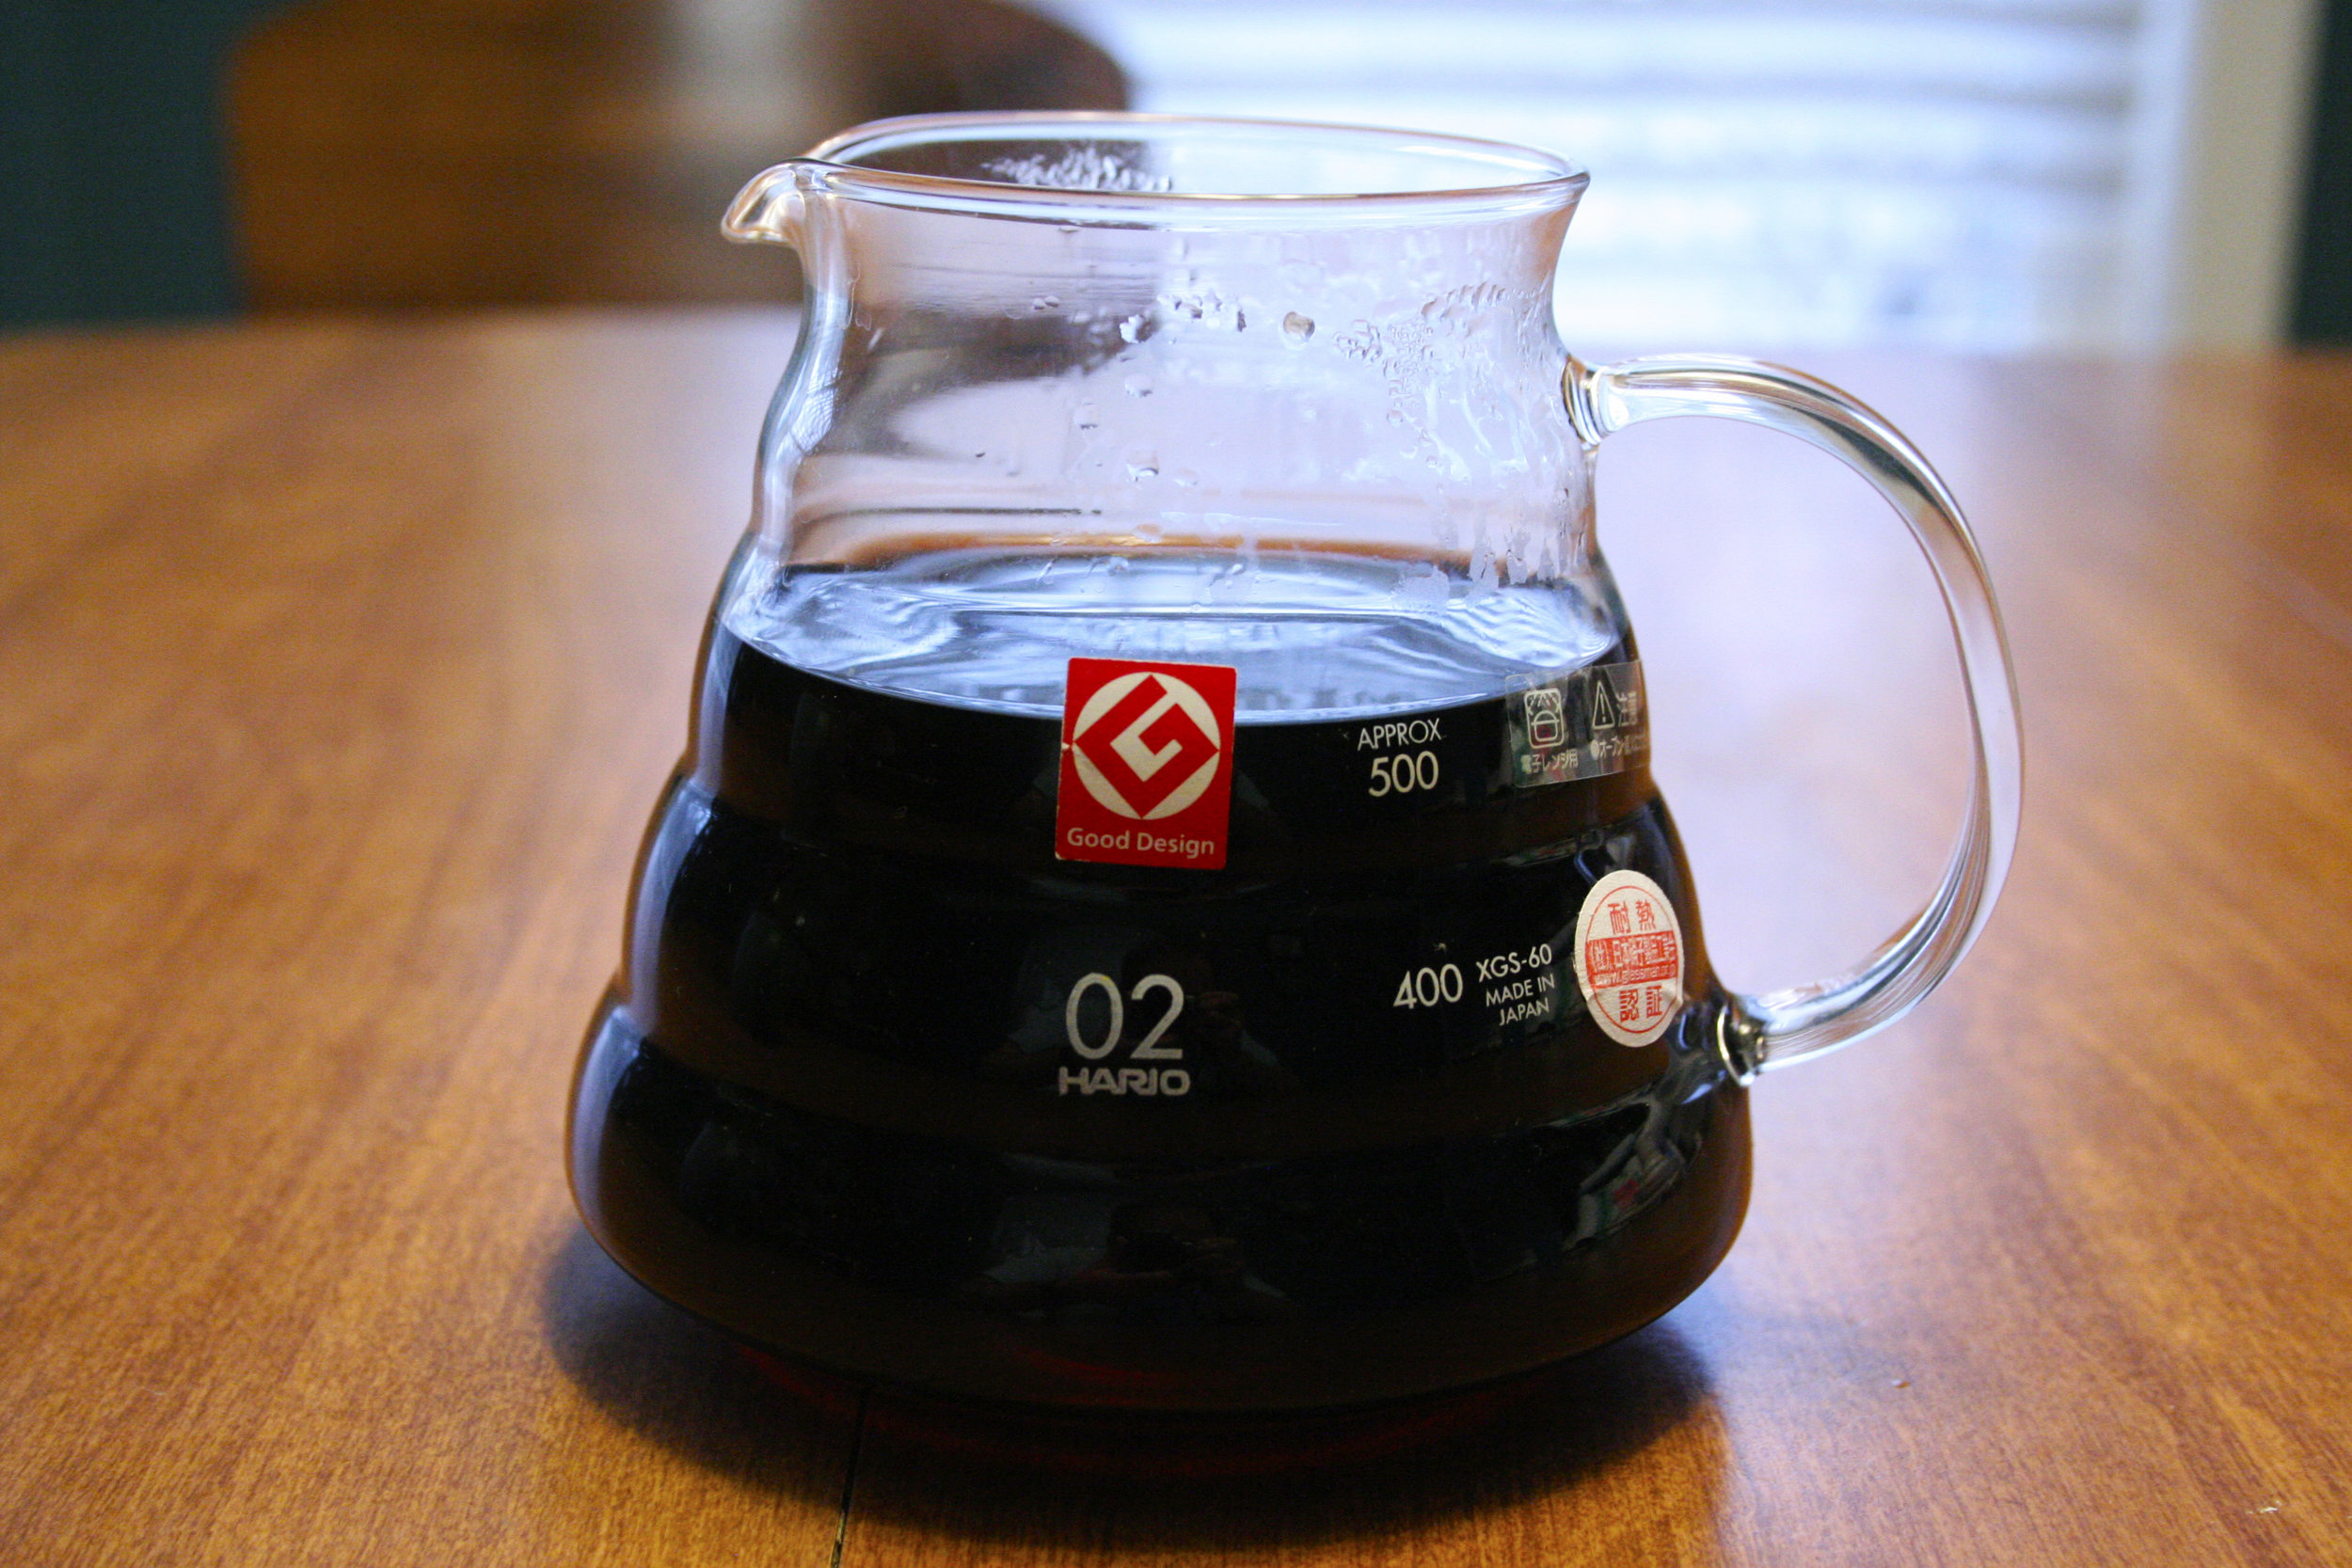 A Hario carafe of Thai Organic Decaf Coffee from Blue Spruce Decaf Coffee Co.